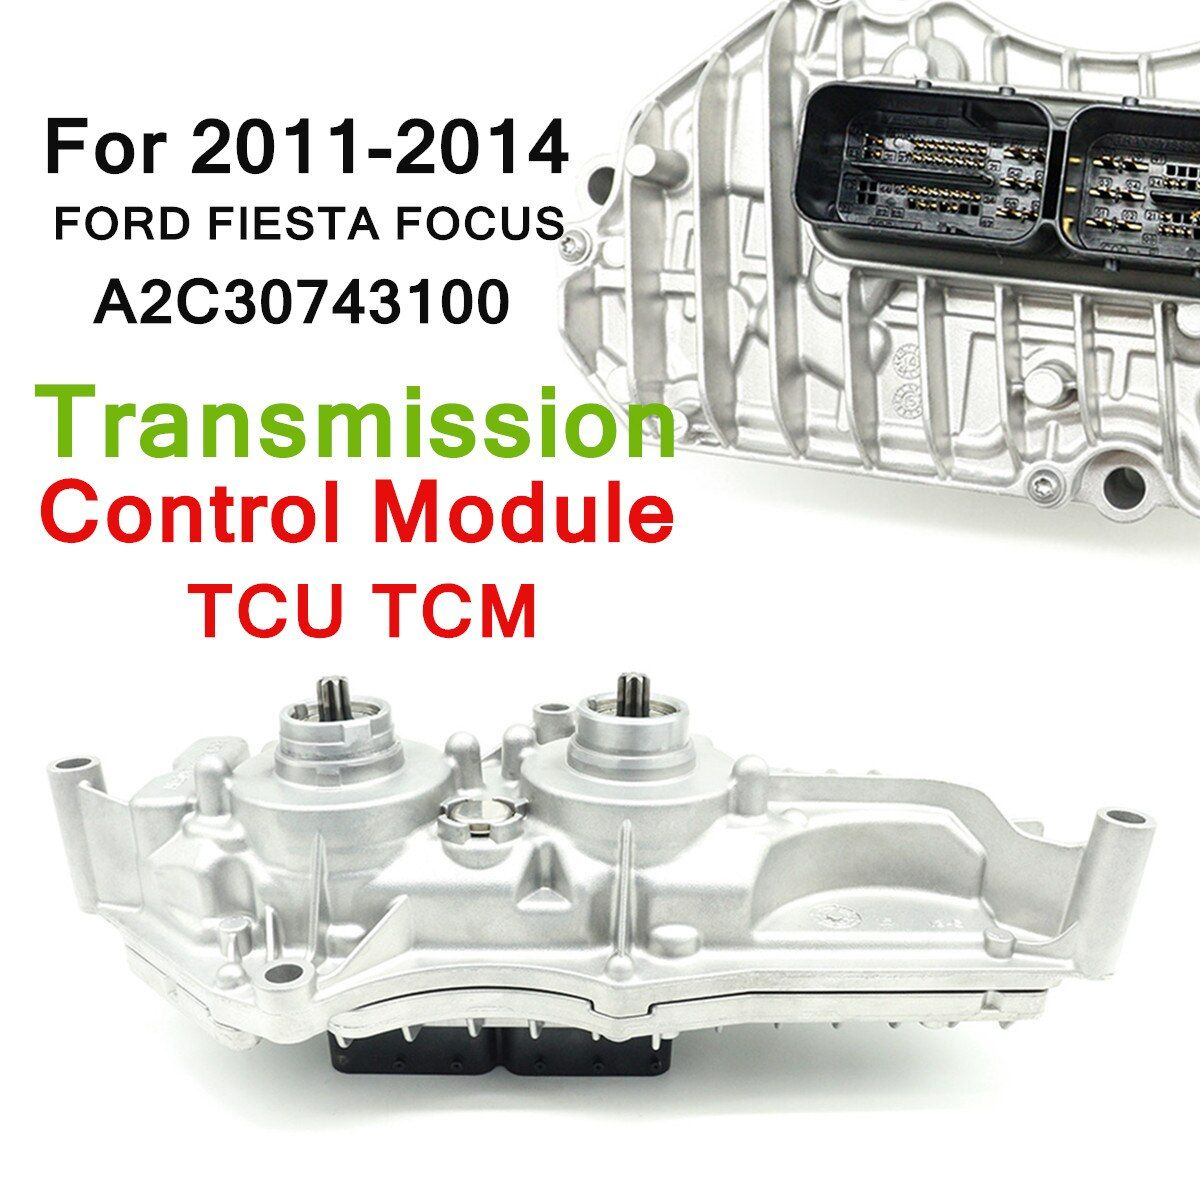 for FORD FIESTA FOCUS 2011-2014 Transmission Control Module TCU TCM A2C30743100 Direct Replacement Silver